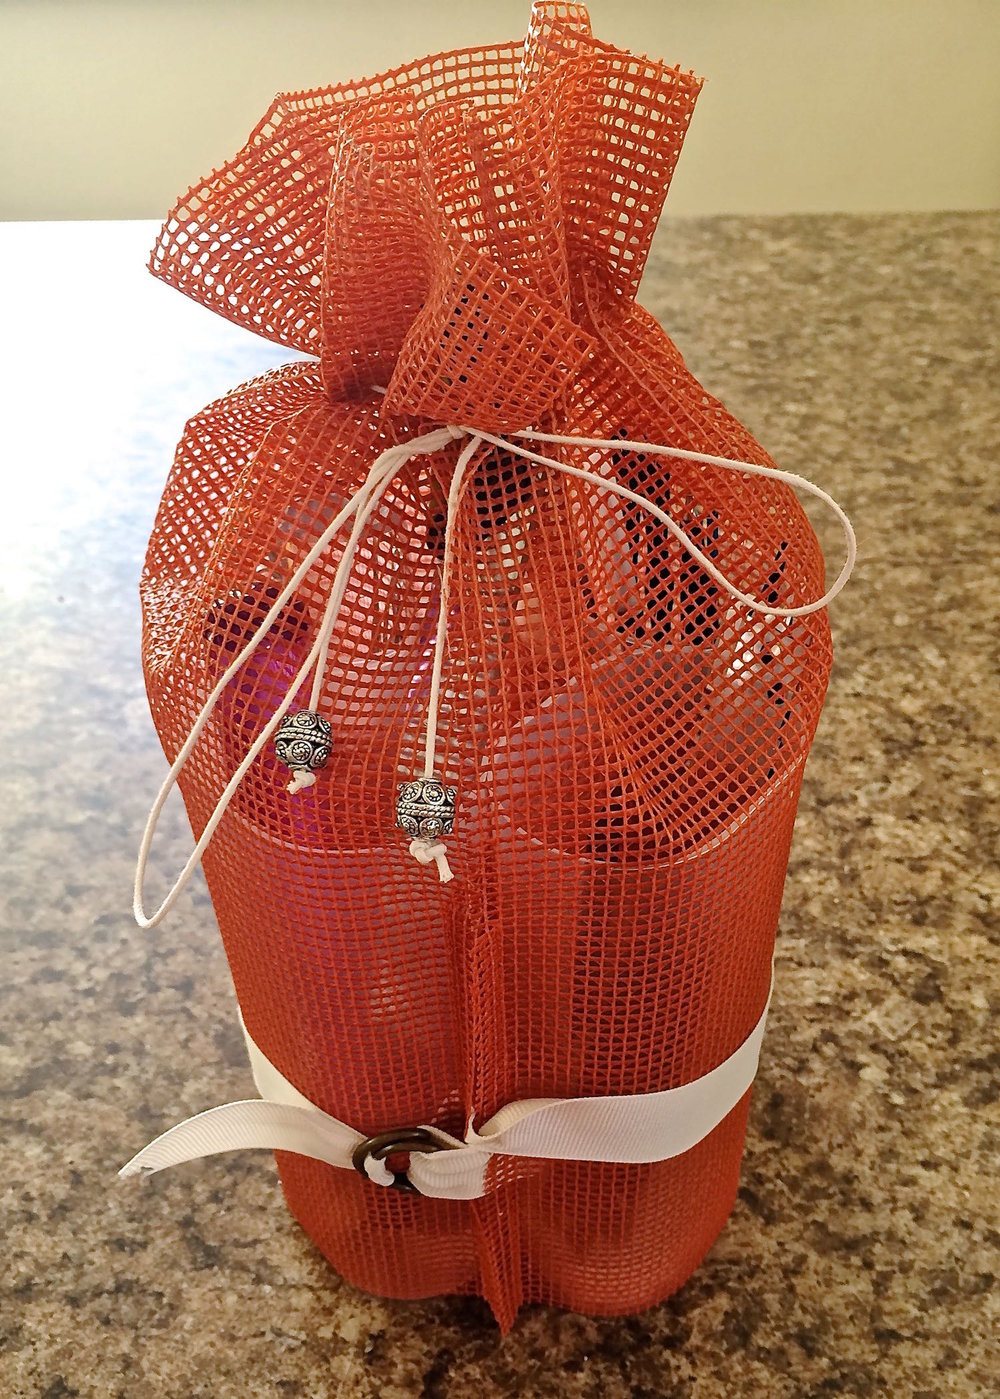 step 10 - Prepare the package for travel by flipping up the fabric back (cuff).  Turn the containers in toward each other and secure them with the ribbon.  Pull on the drawstrings and tie the ends together.